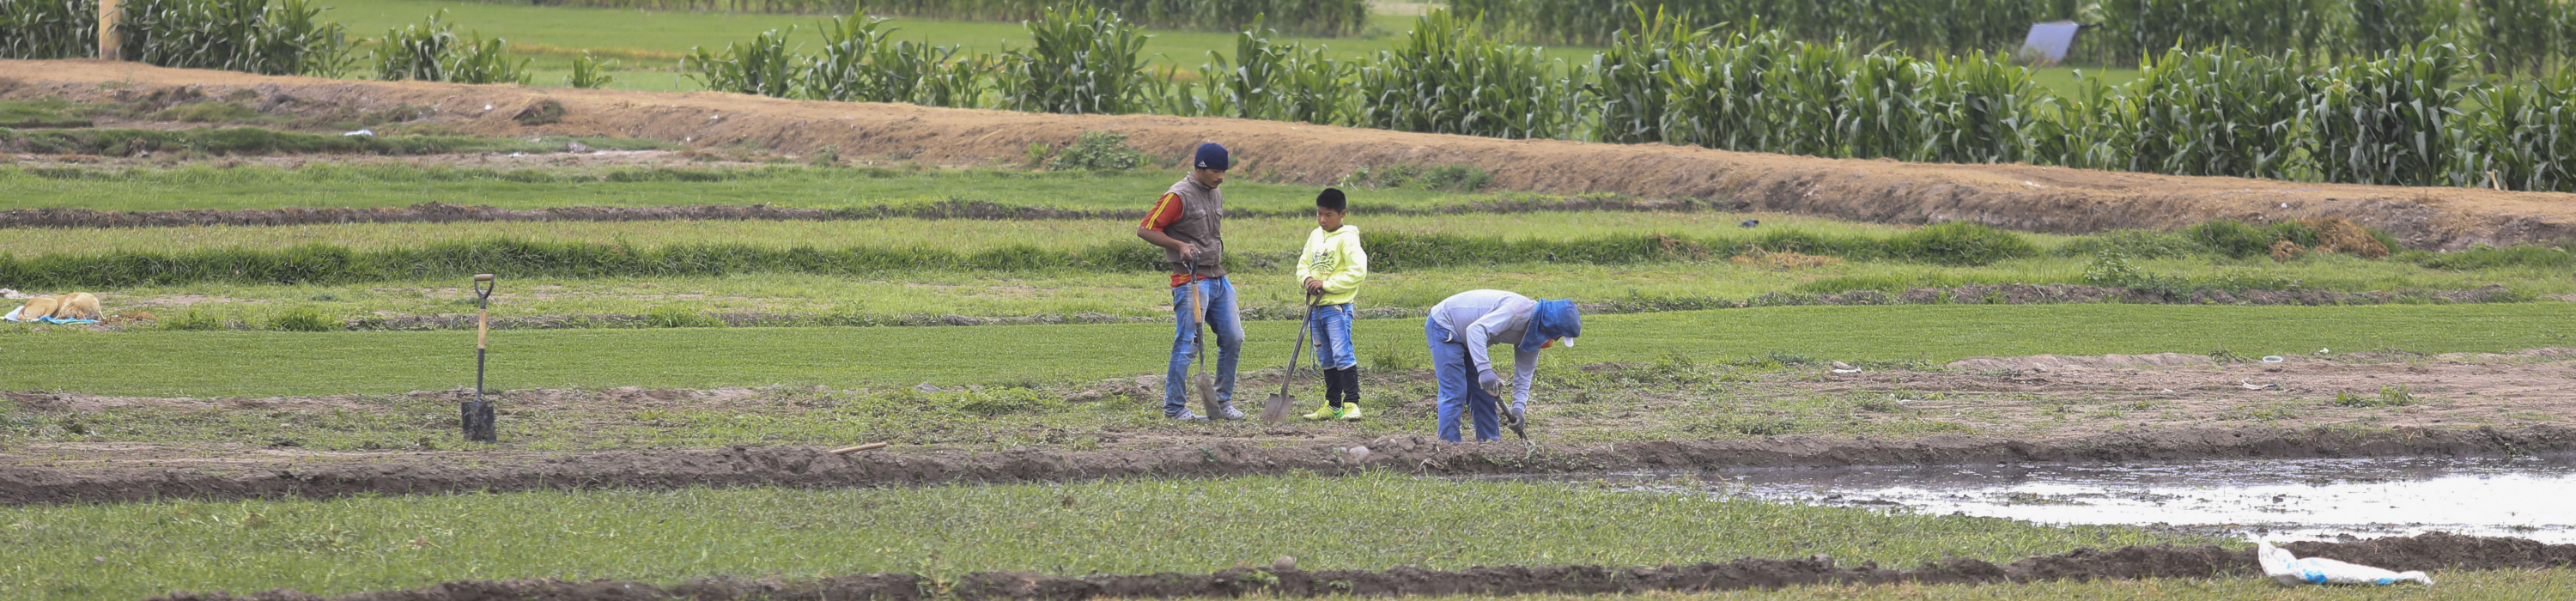 Three people working in a field